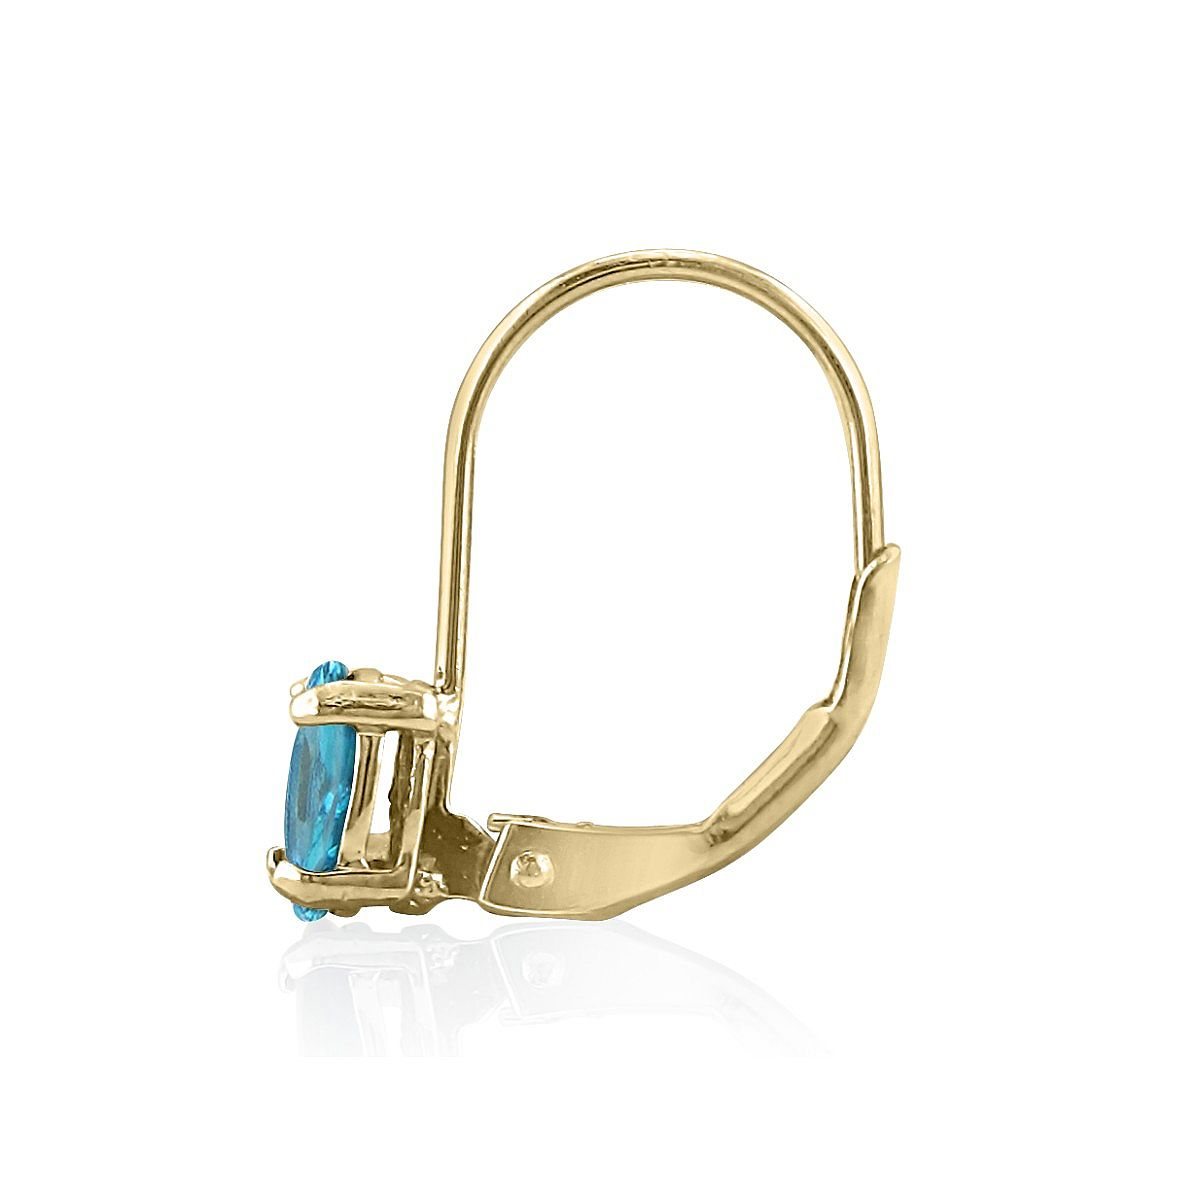 1ct Oval Blue Topaz Solitaire Leverback Earrings in 14k Yellow Gold